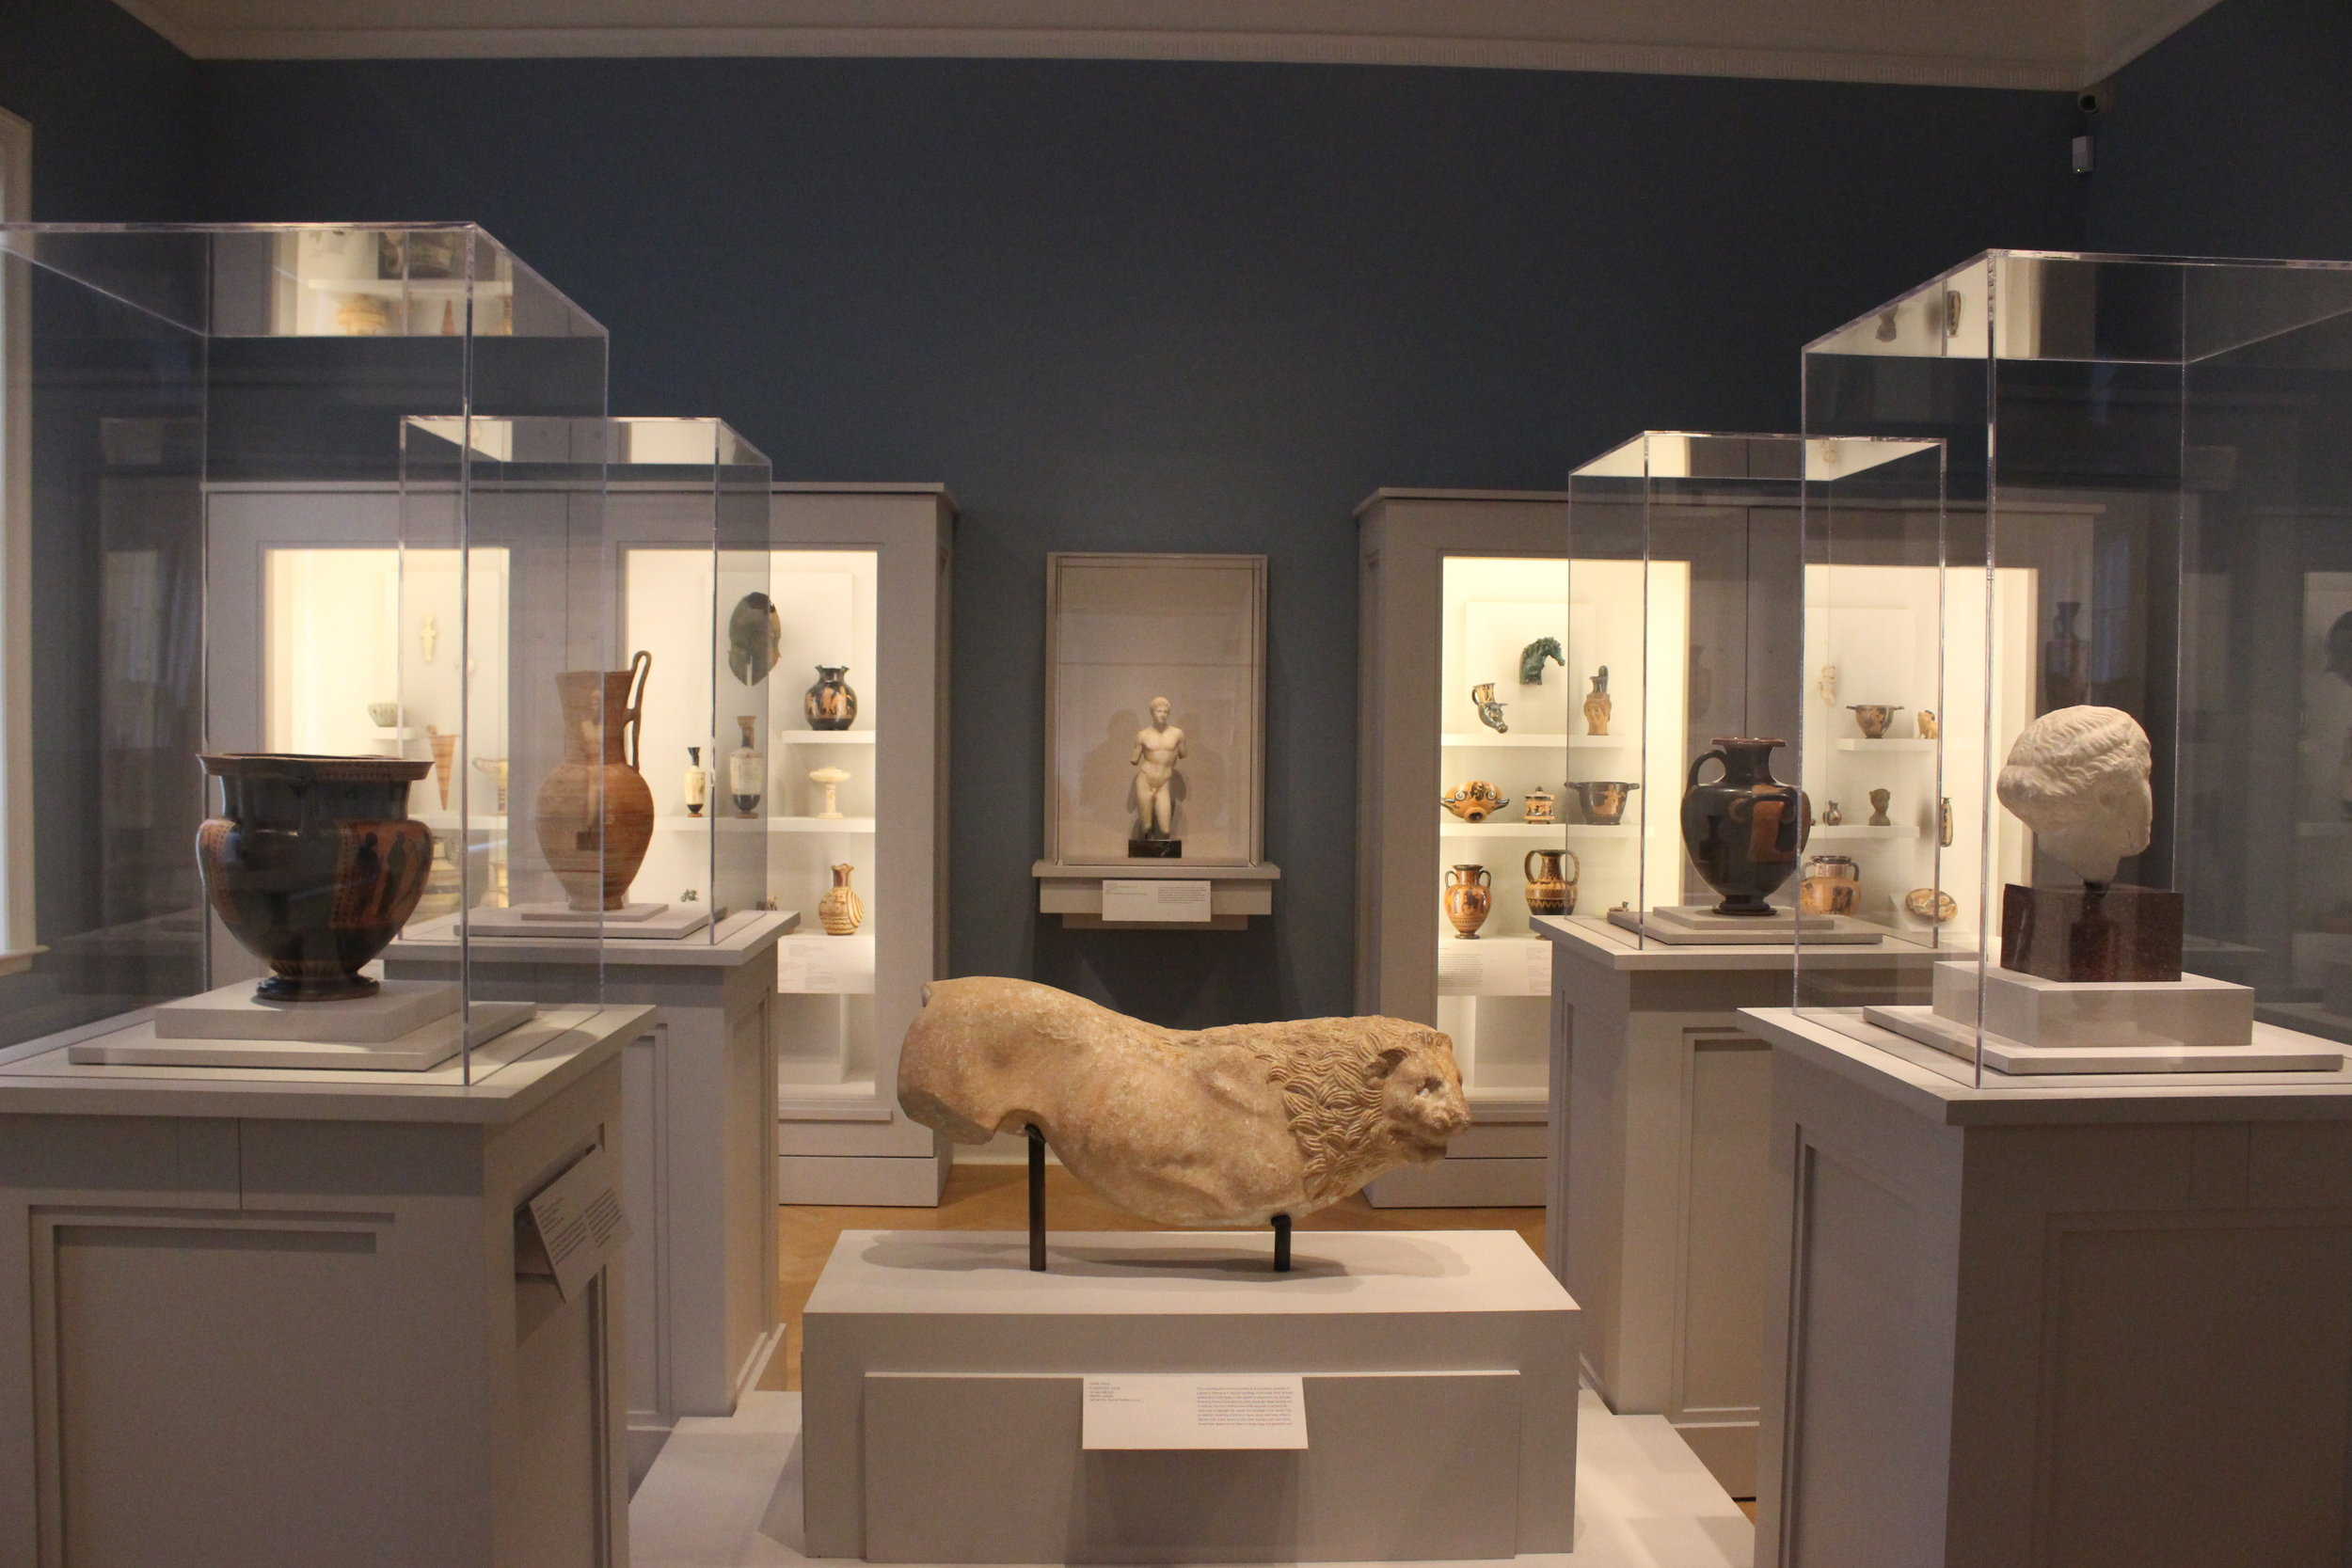 A very symmetrical room showing off multiple ancient Greek pieces